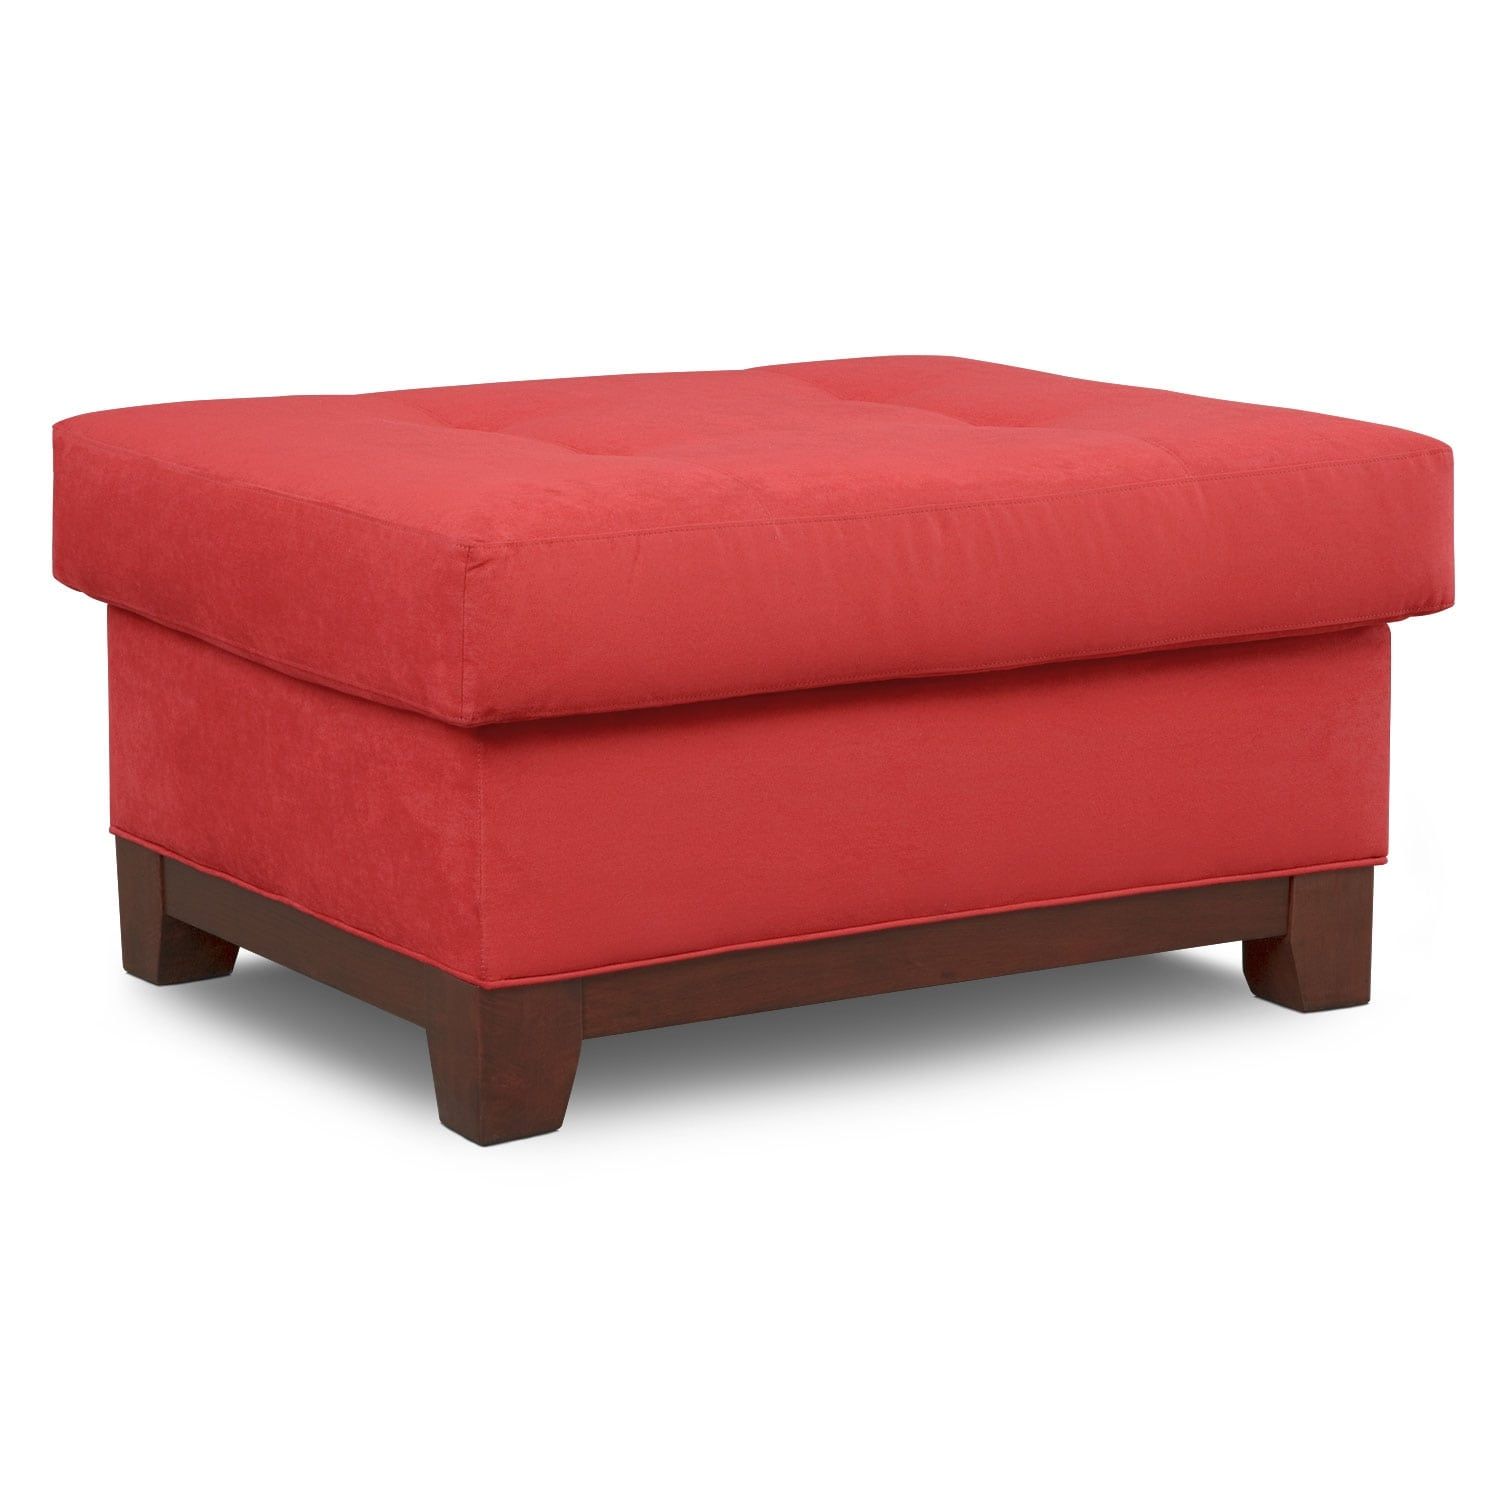 Living Room Furniture - Soho Ottoman - Red